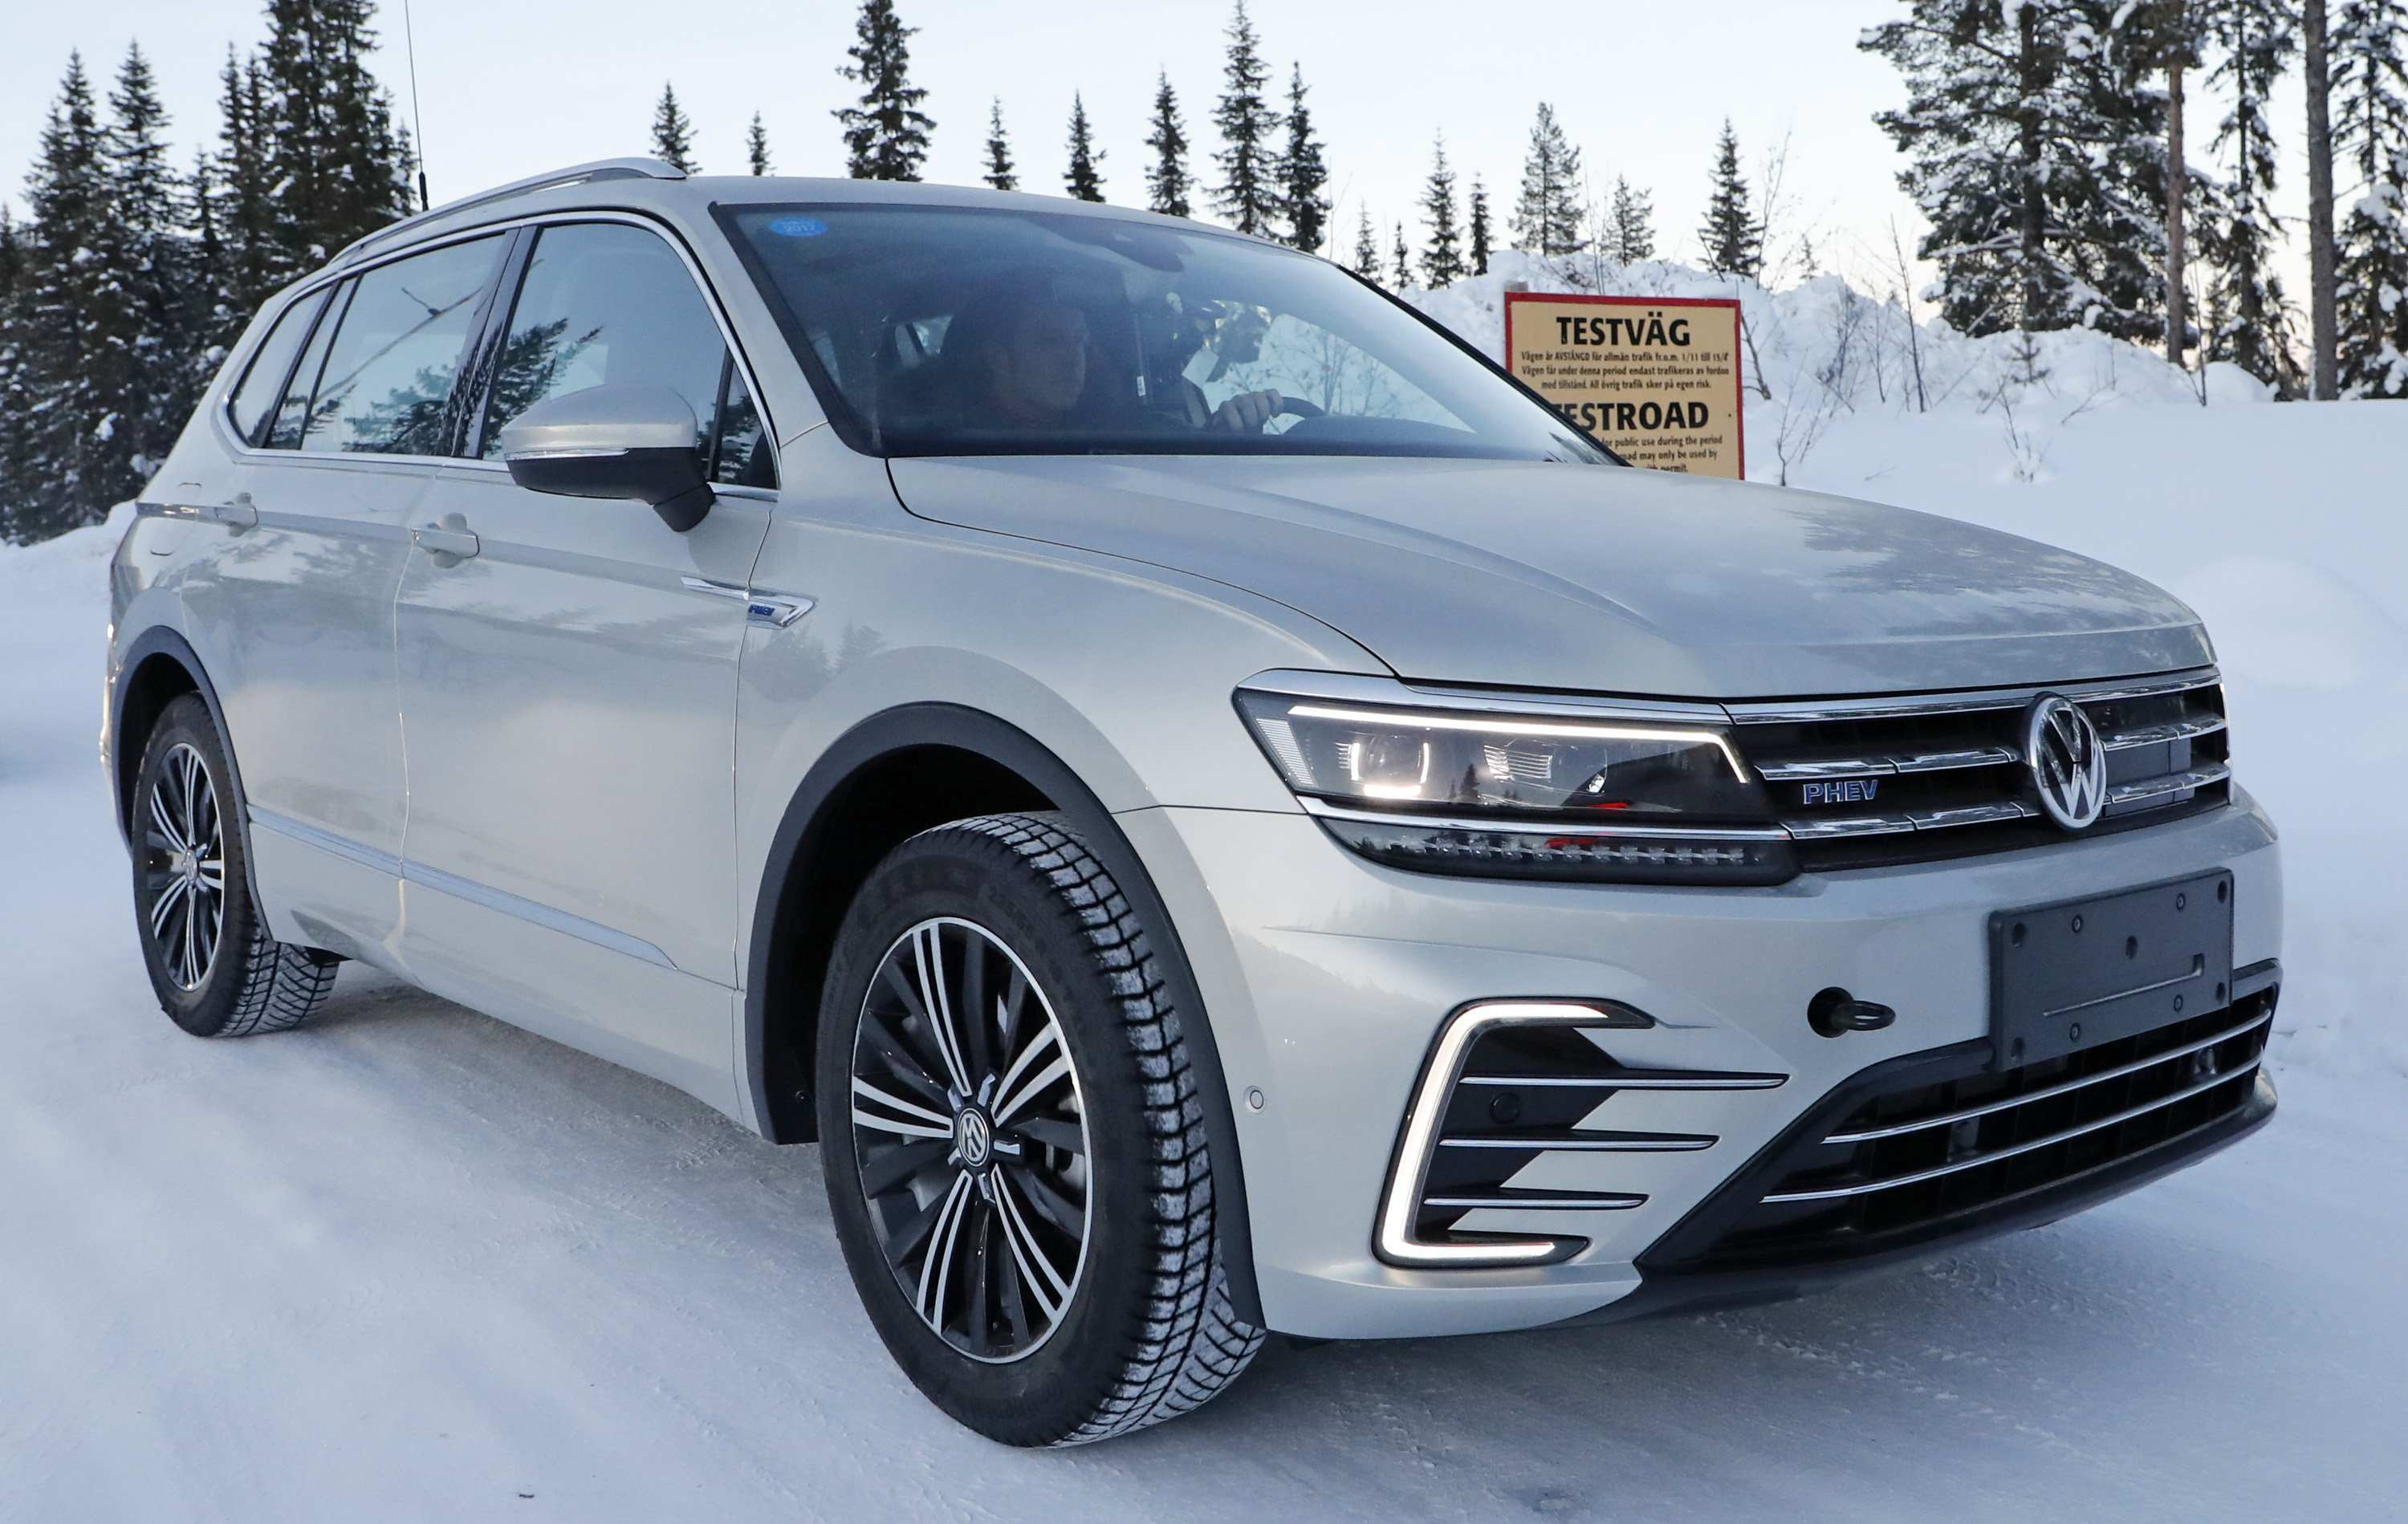 94 All New Volkswagen Tiguan Hybrid 2020 Concept